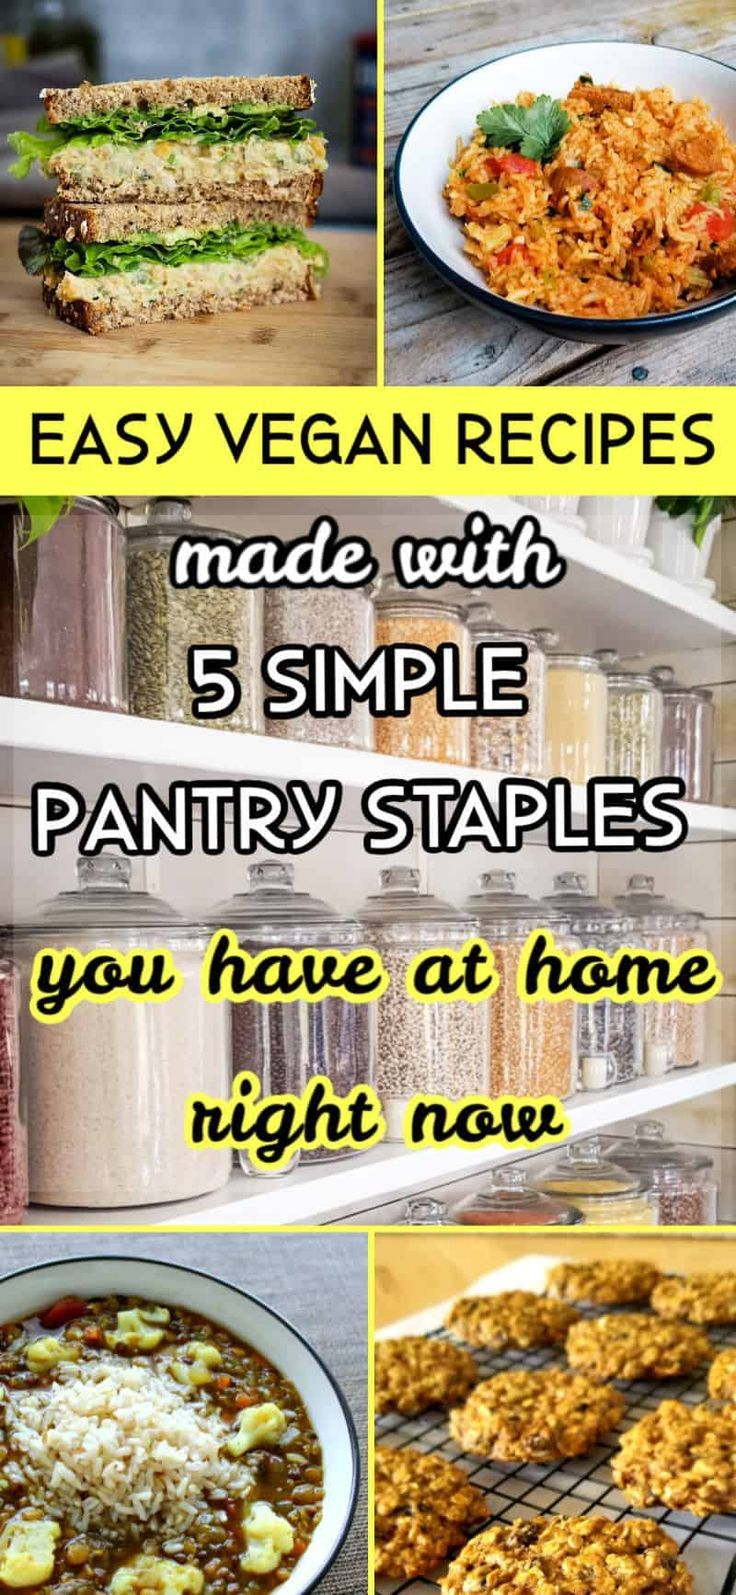 Easy Vegan Recipes Based On 5 Pantry Staple Ingredients Most Vegans Have At Home Right Now In 2020 Vegan Recipes Easy Vegan Recipes Easy Healthy Vegan Pantry